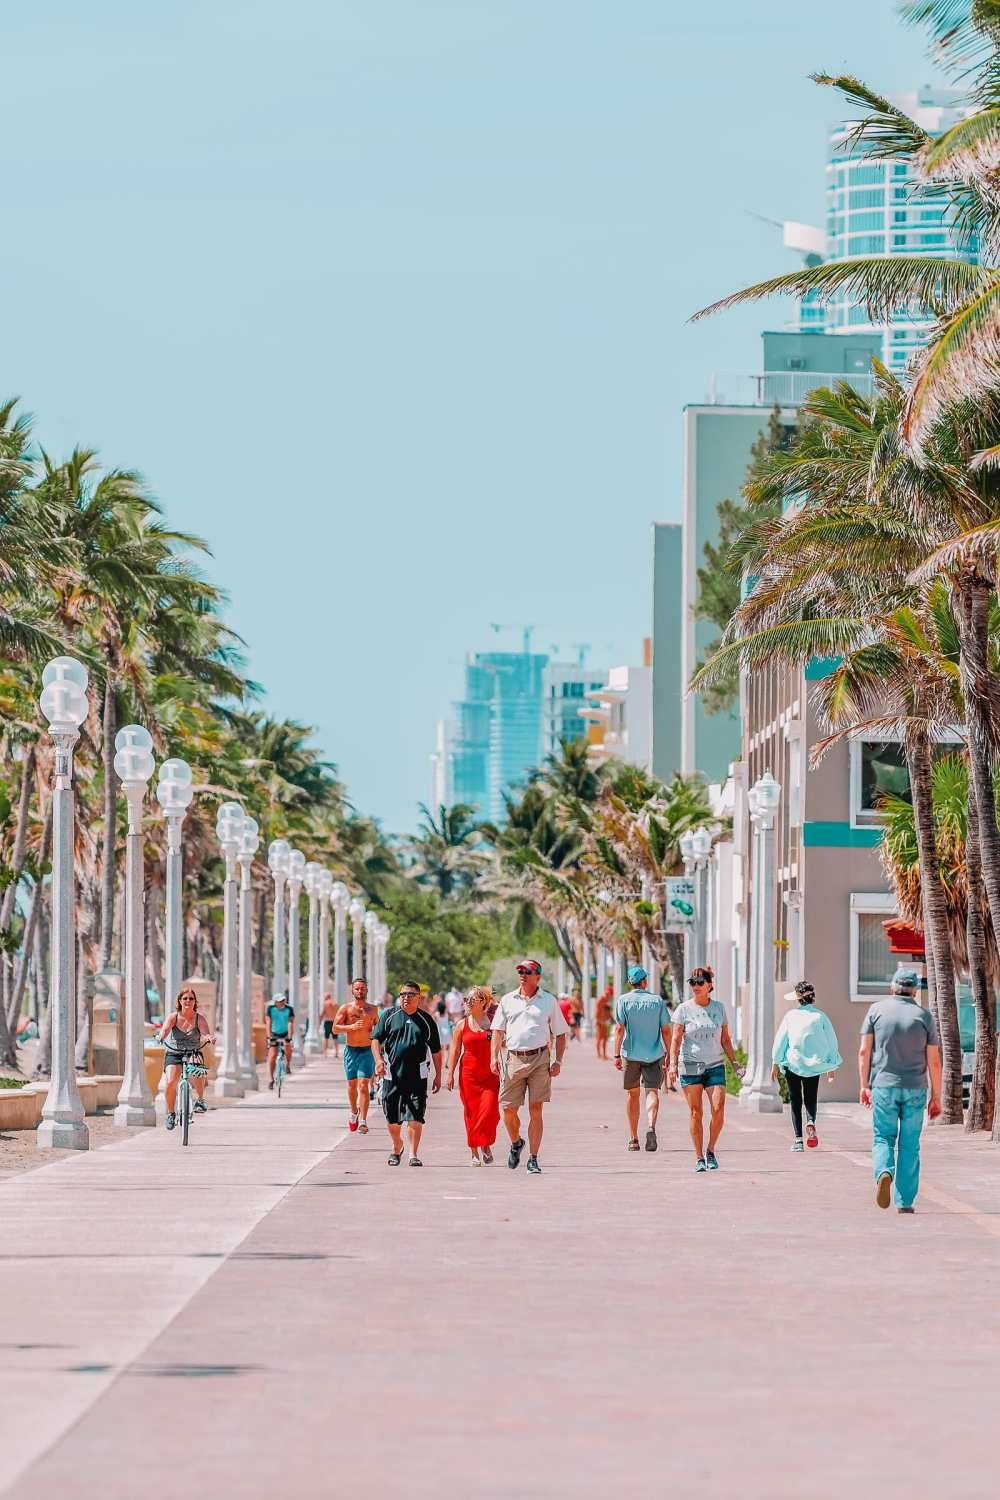 10 Best Things To Do In Hollywood Florida In 2021 Hollywood Beach Florida Best Places In Florida Hollywood Beach